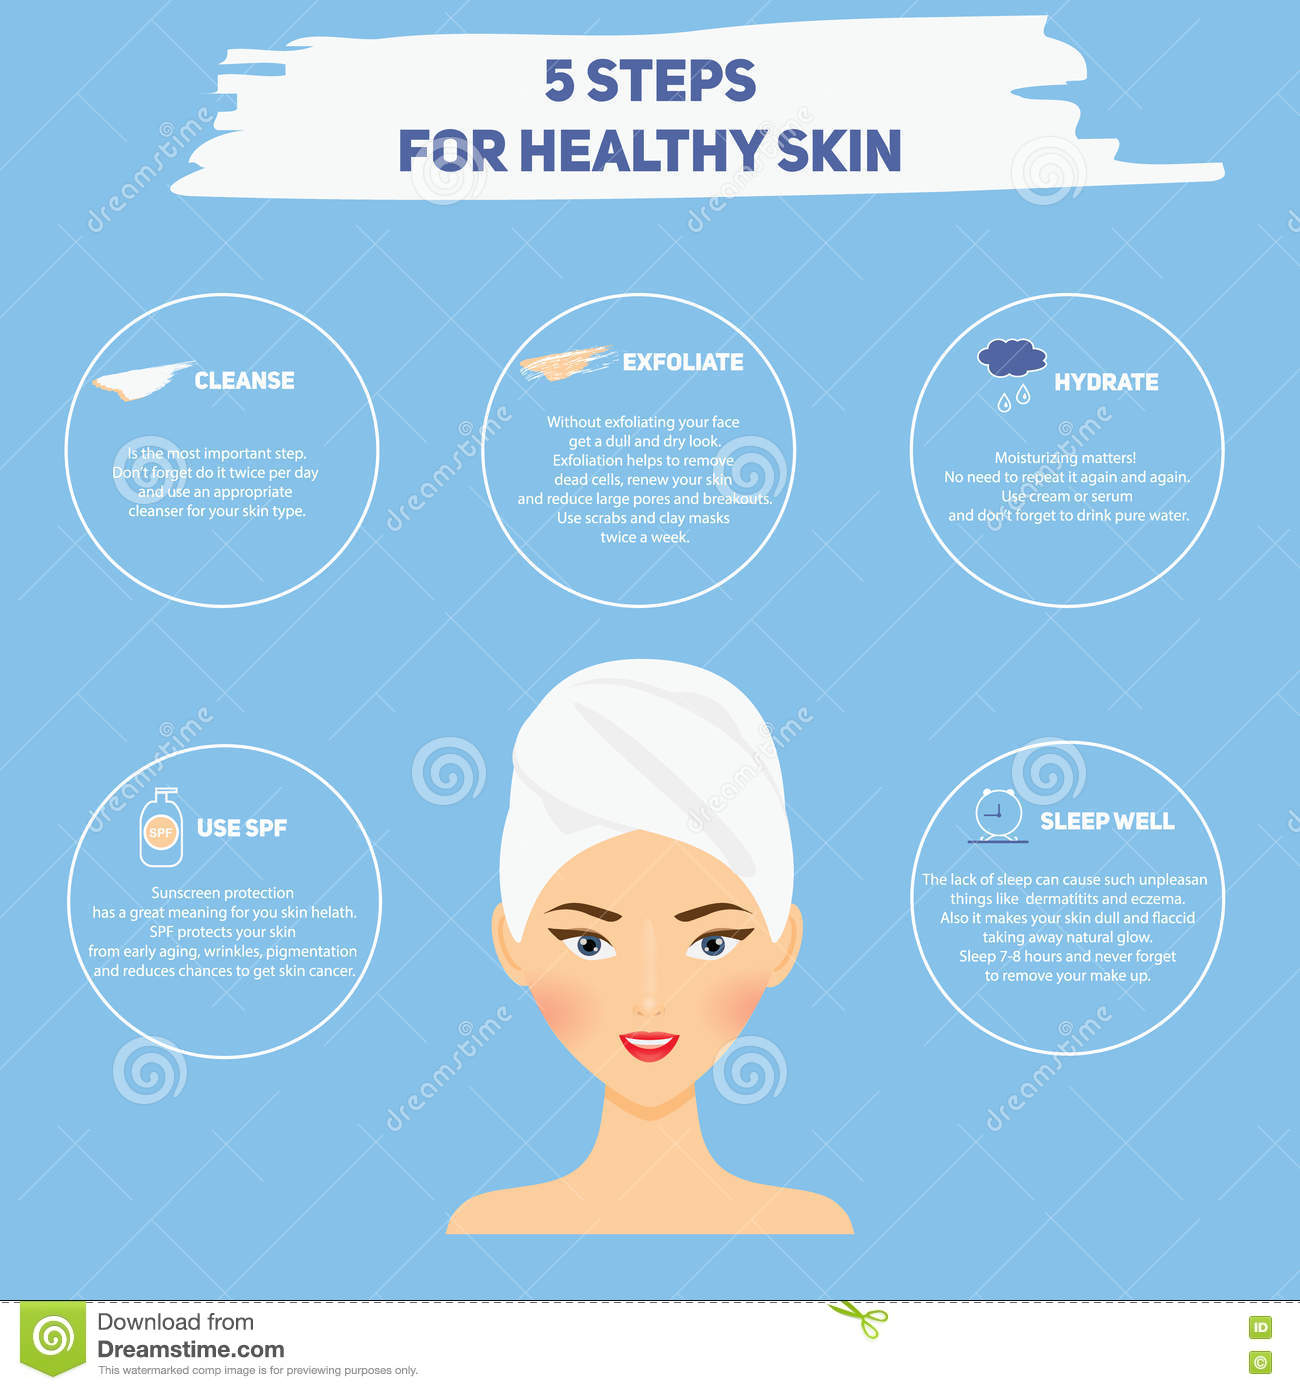 5 Steps to Maintain Healthy Skin at Night